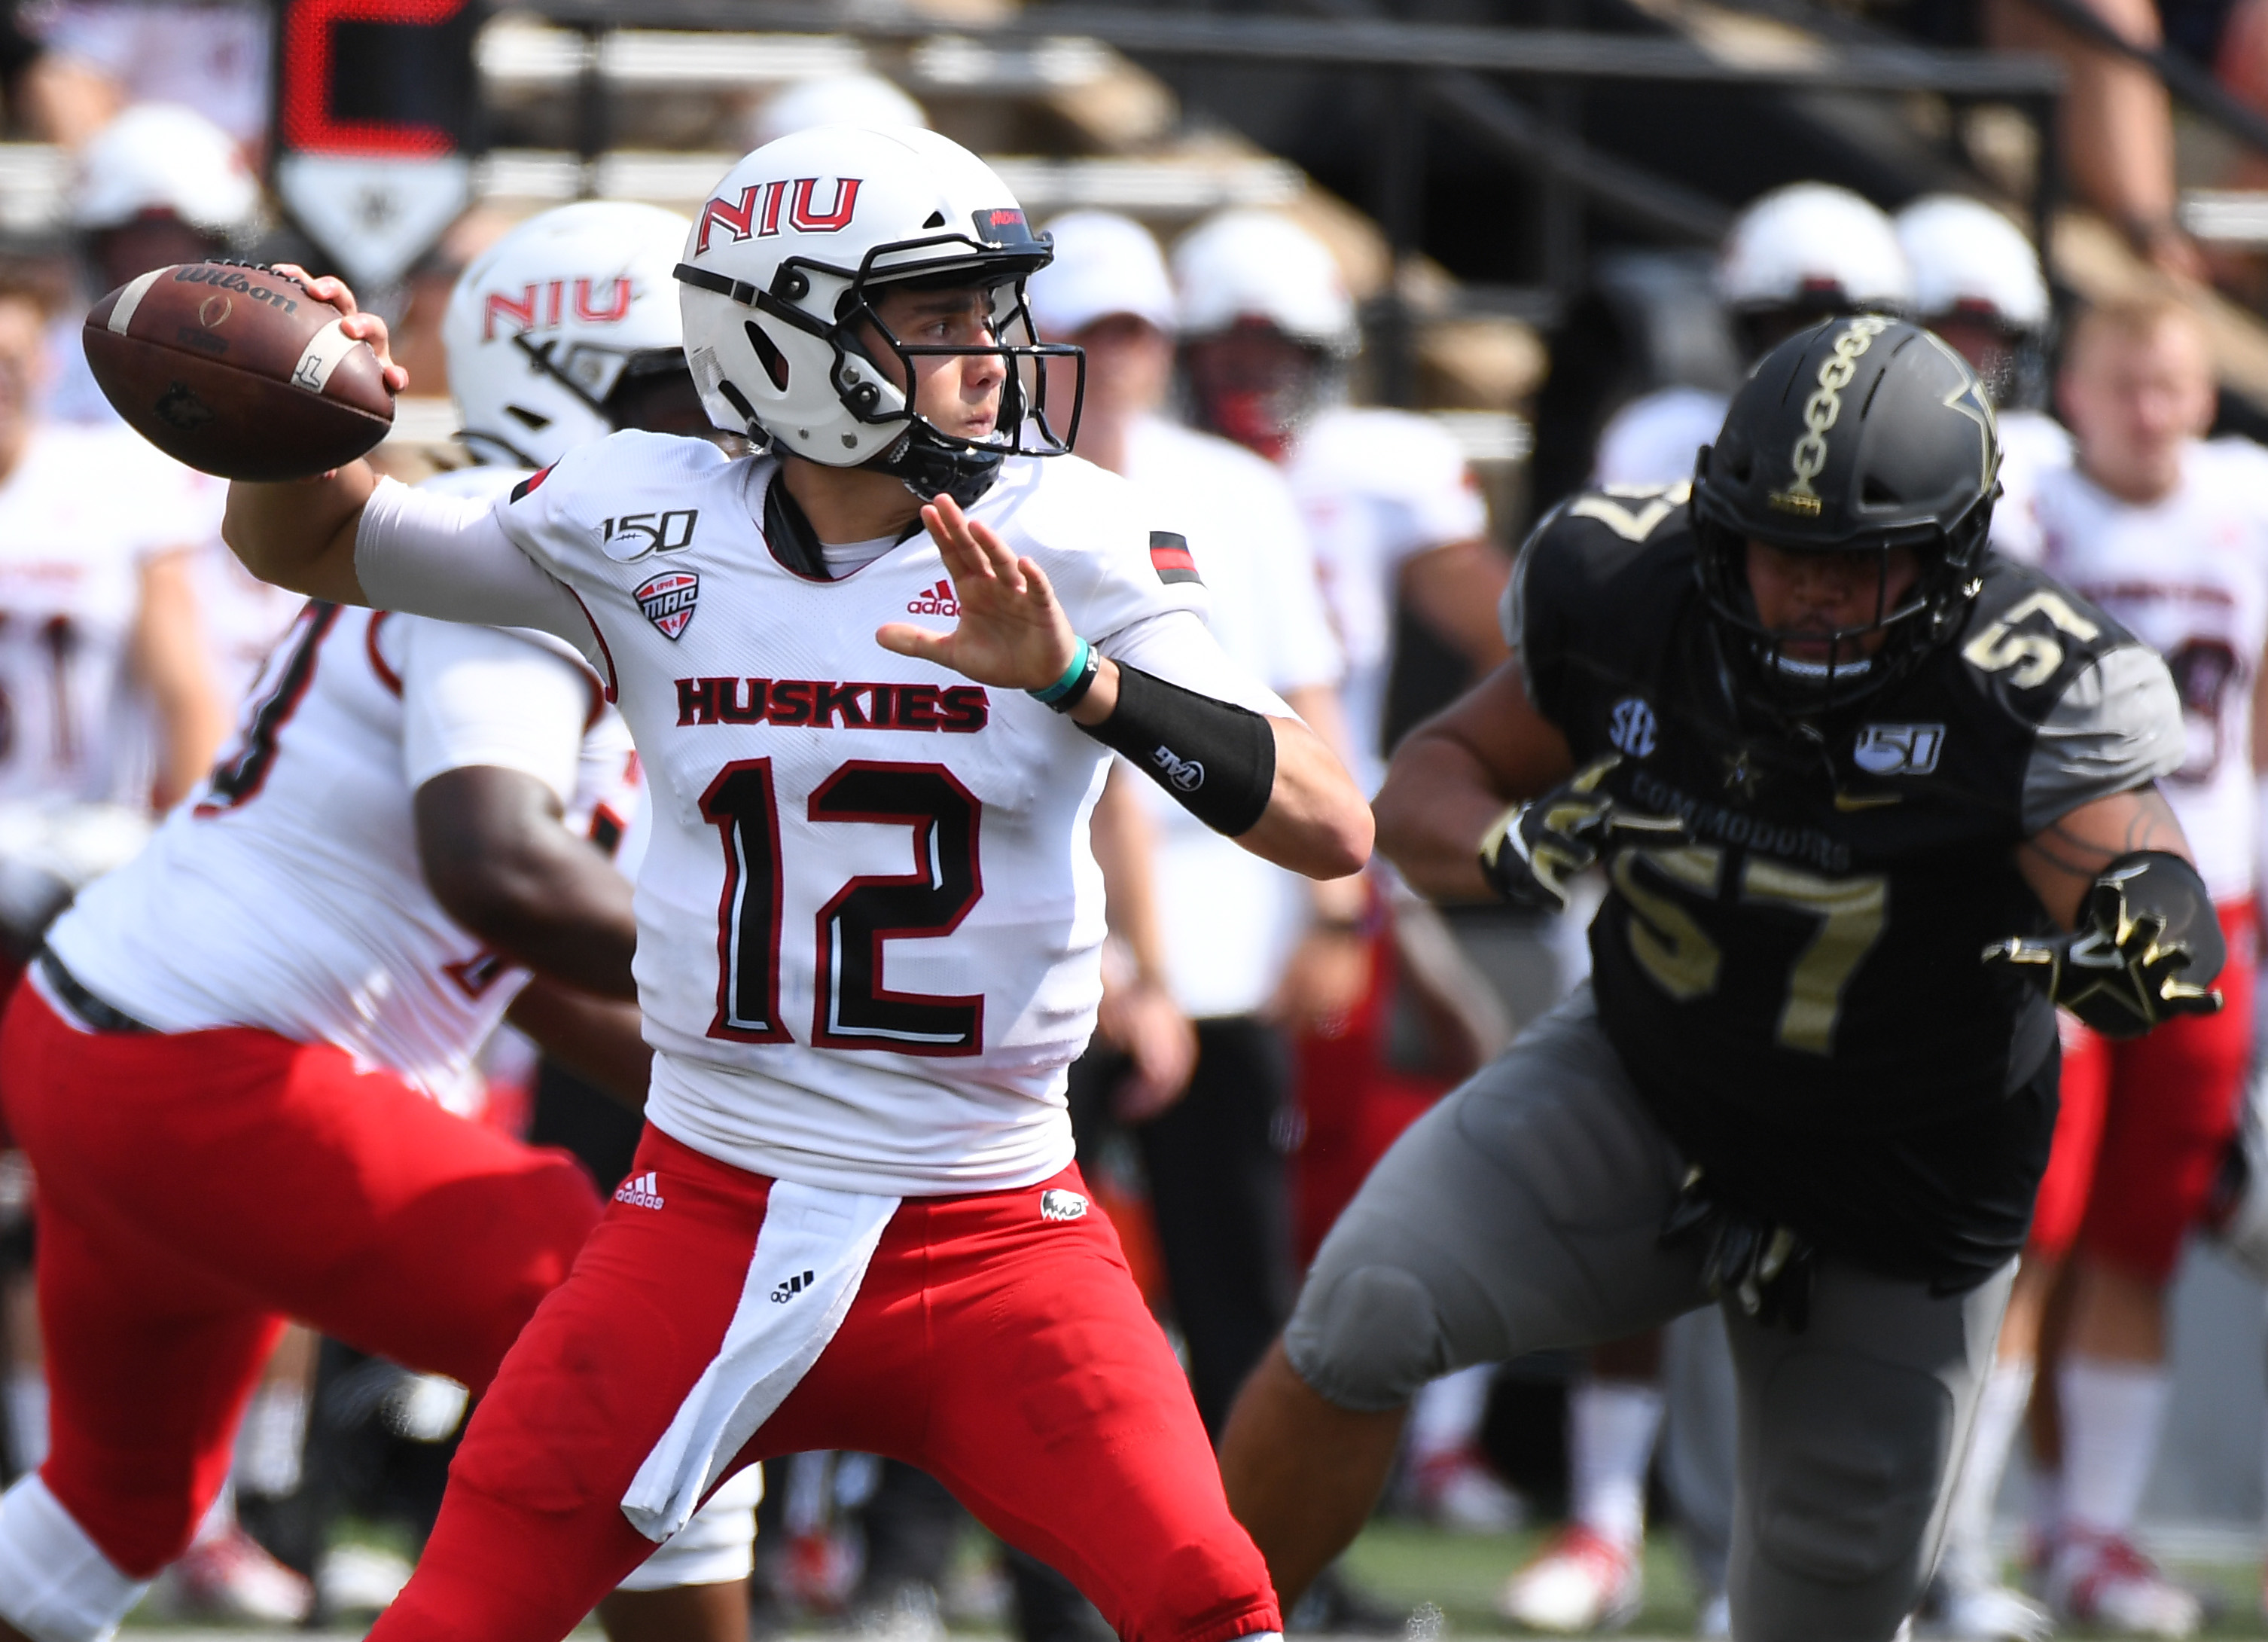 NCAA Football: Northern Illinois at Vanderbilt